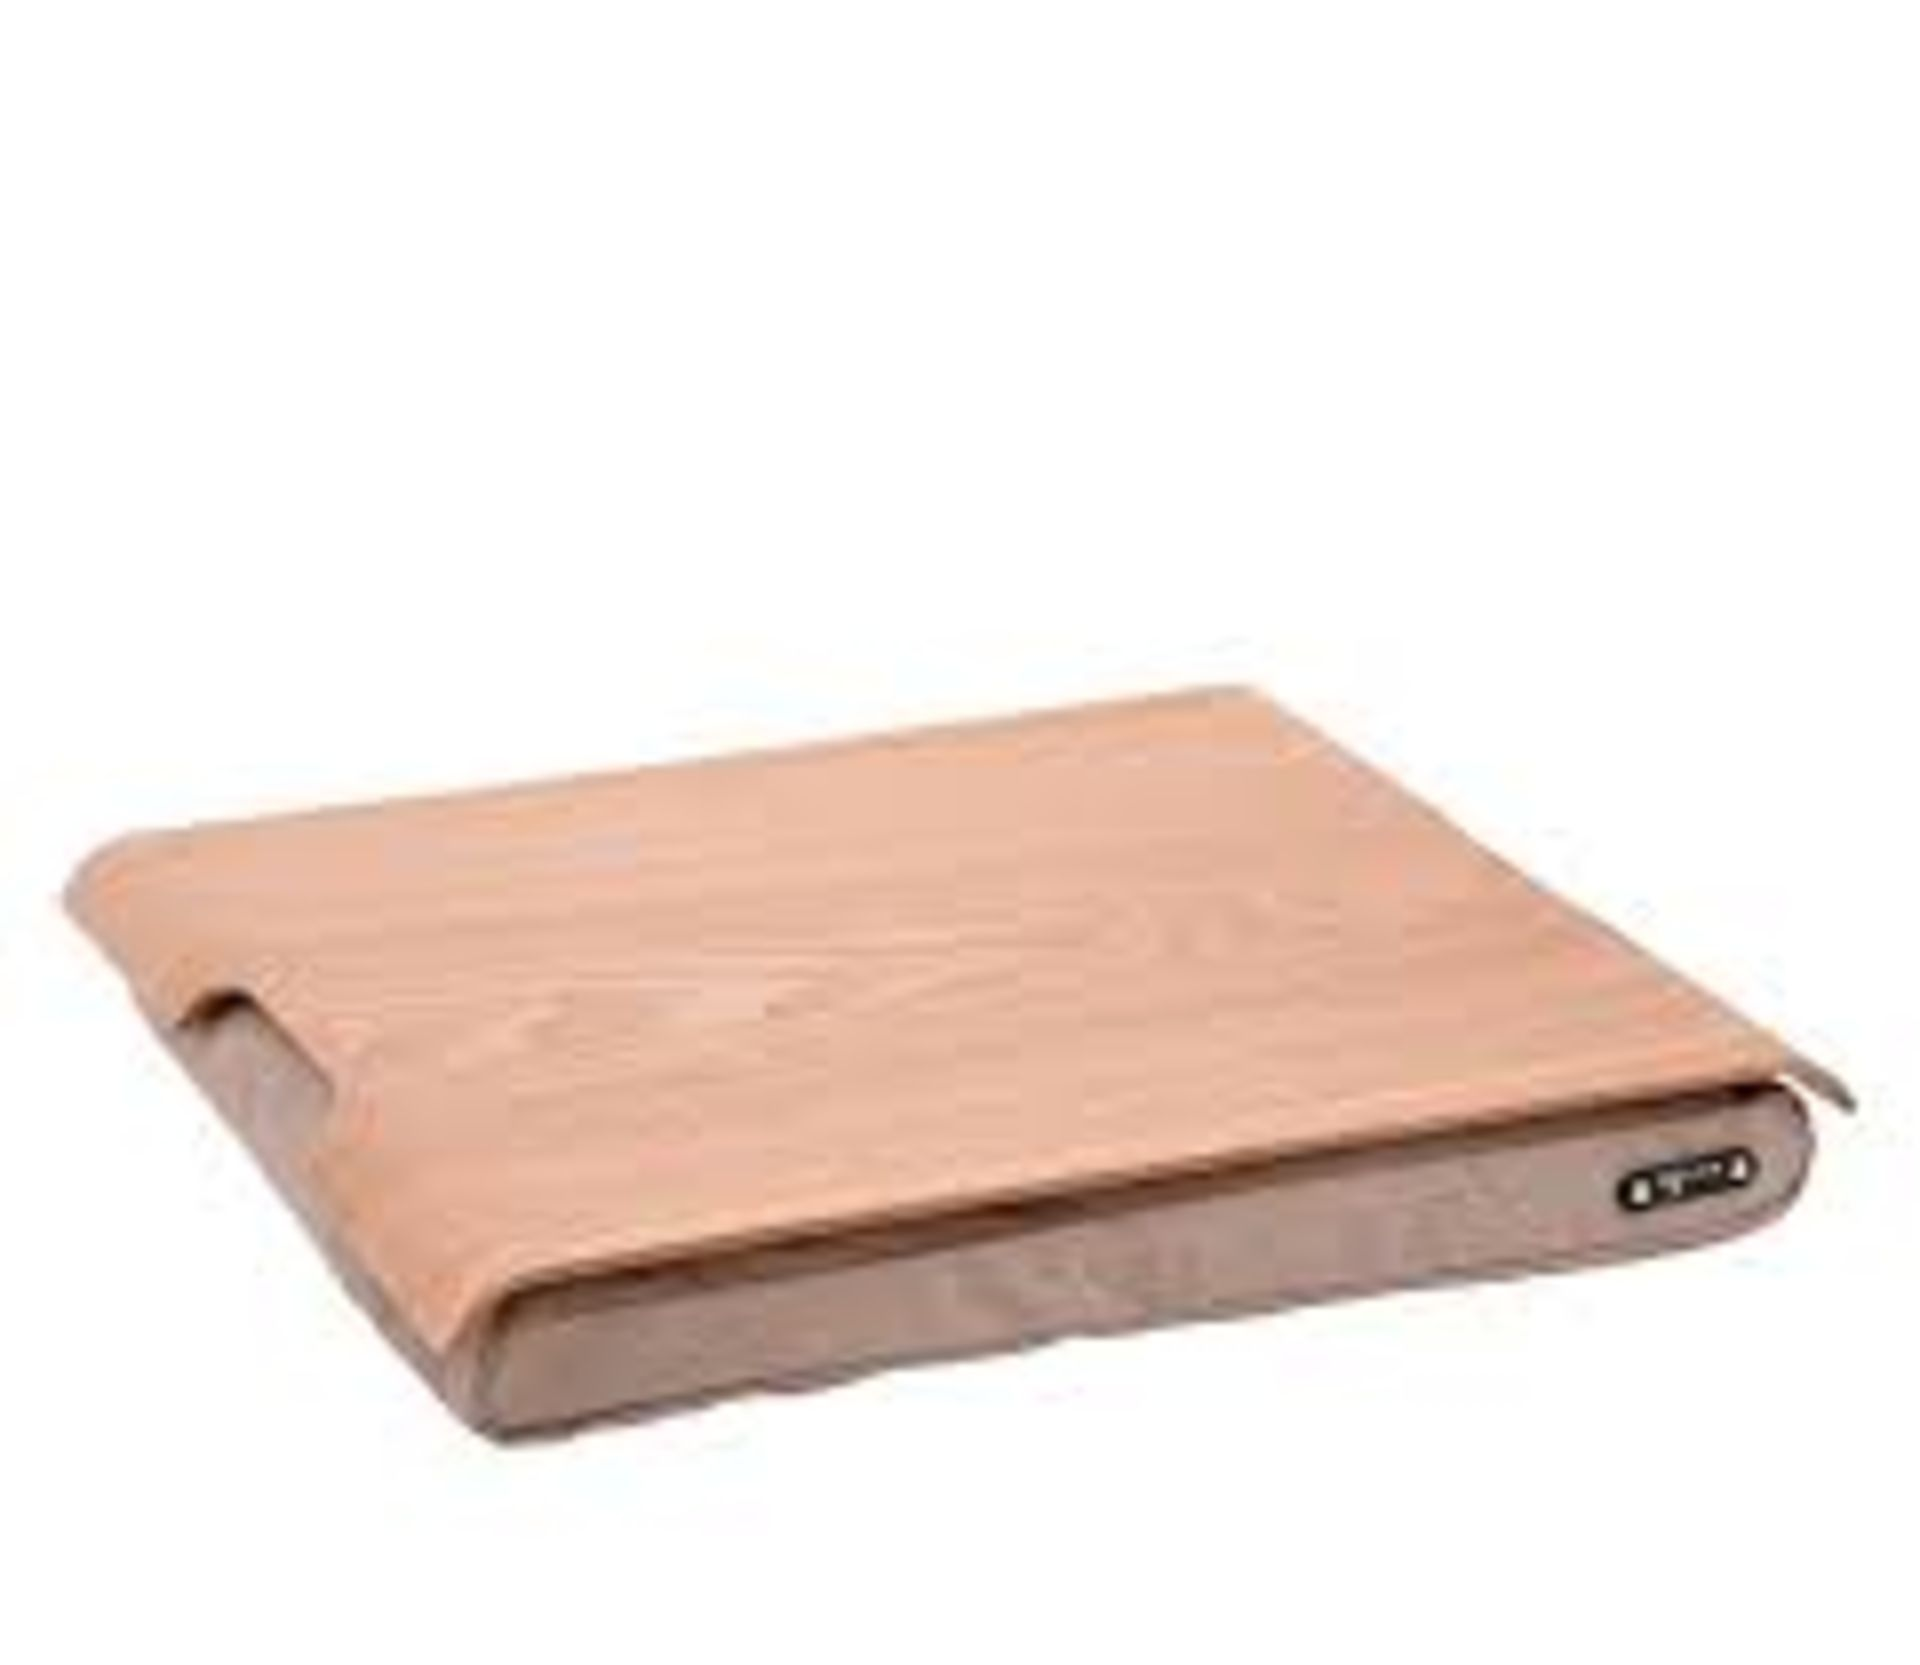 Lot 20 - Bysign Stock Home Lap Tray, RRP£60.00 (RET00579557) (Public Viewing and Appraisals Available)